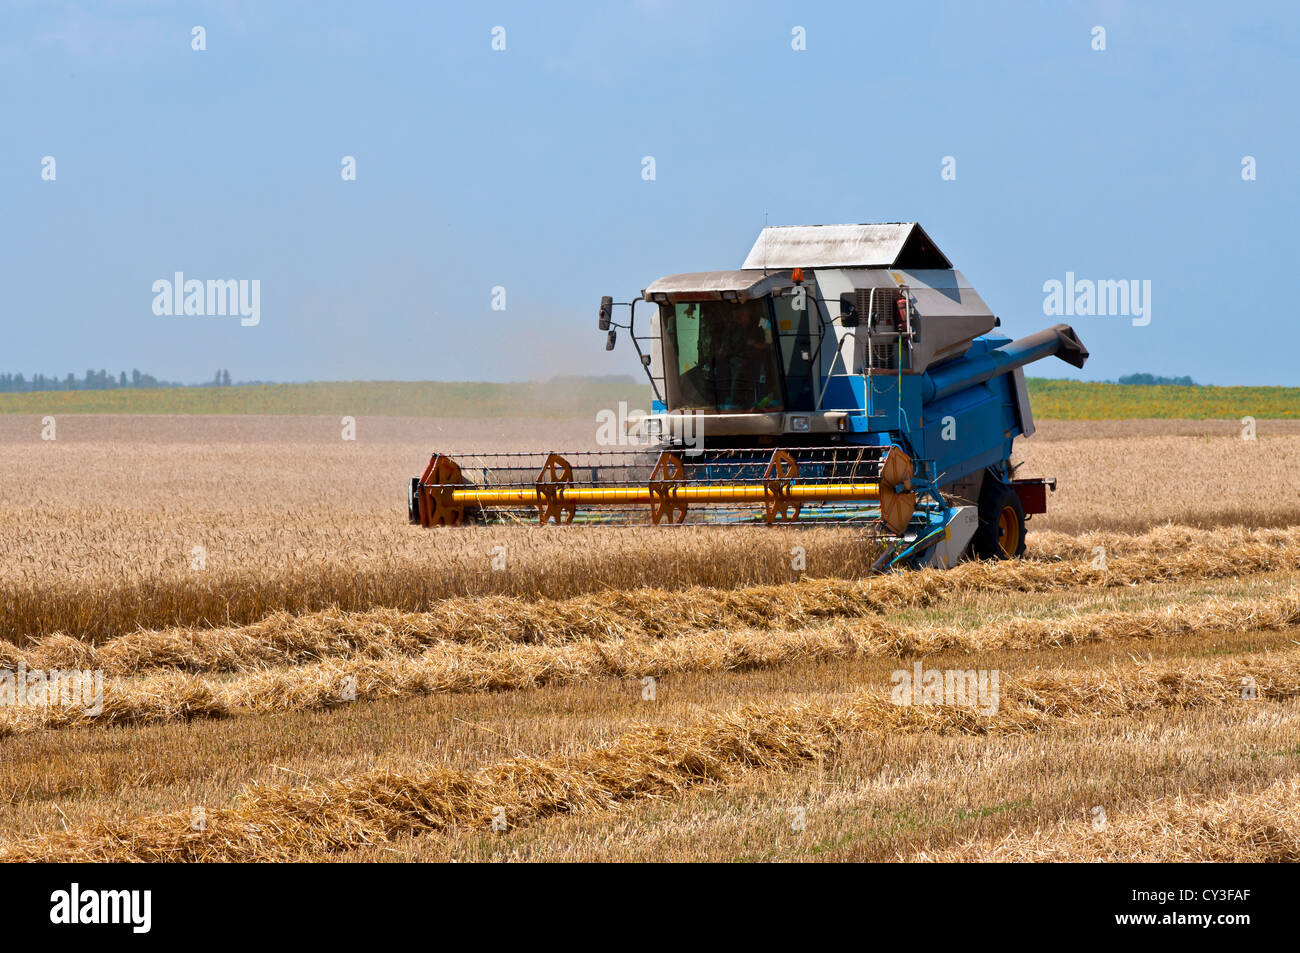 Combine harvester working a wheat field - Stock Image